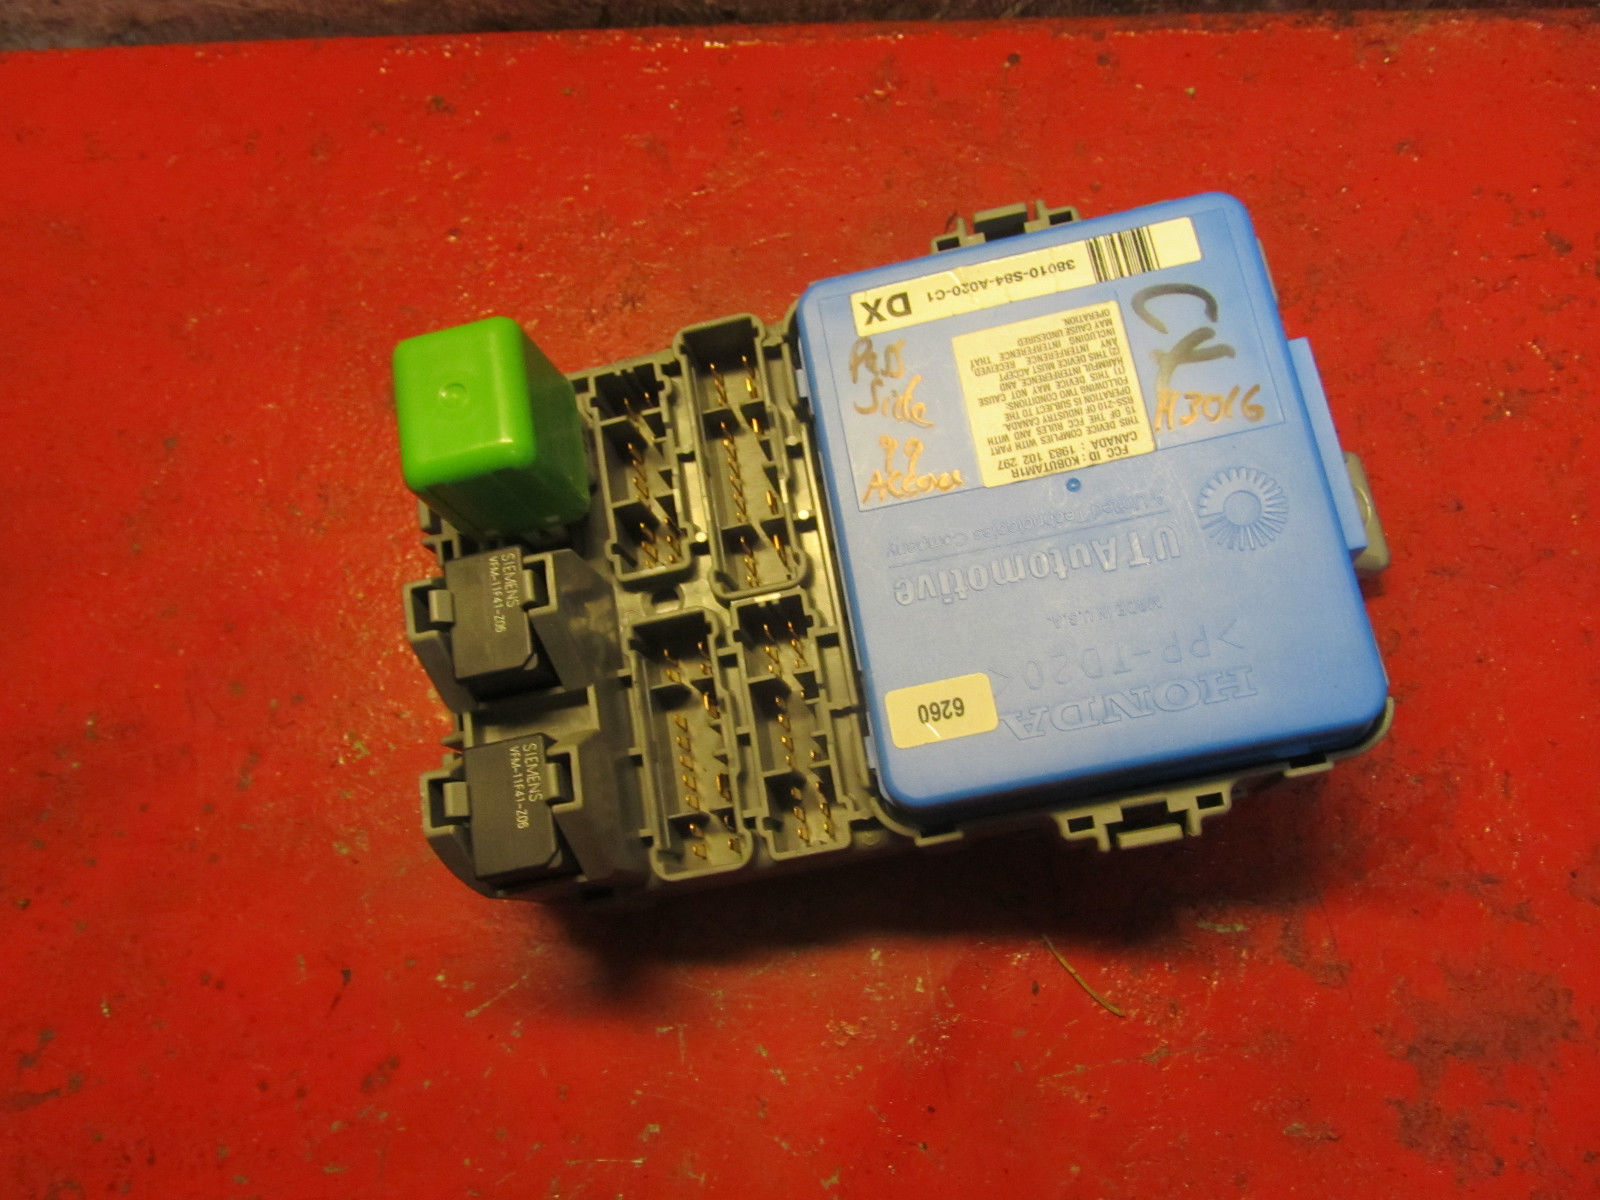 5095fd6d 7420 4fc4 bf2f 16e0493ec50d 02 01 98 00 99 honda accord right interior fuse box panel module Brother MFC 7420 Scan at readyjetset.co